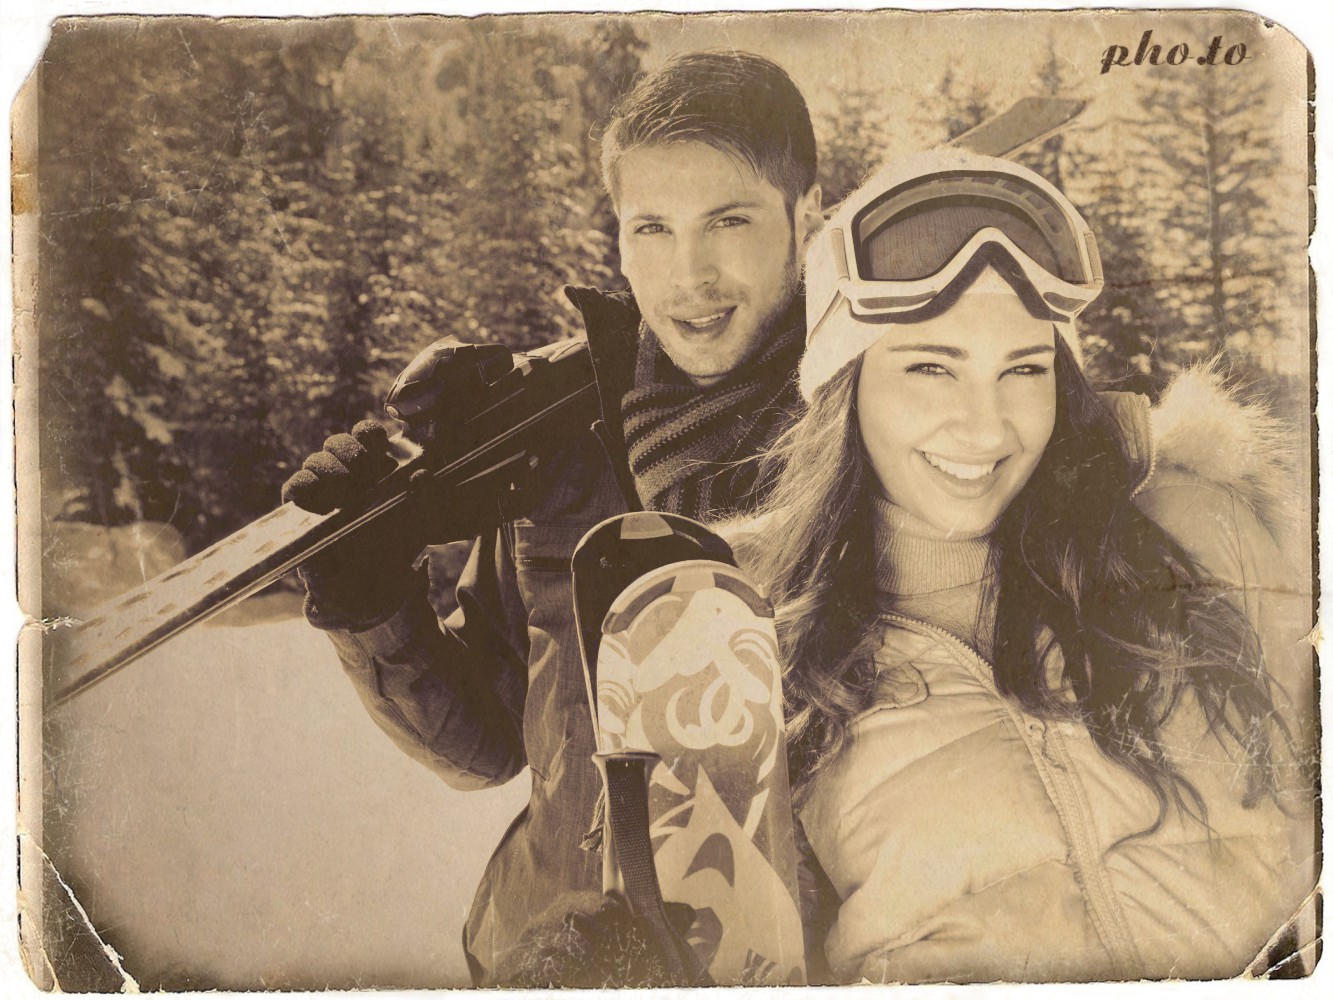 A picture of a couple in the mountains is turned into old photo card.